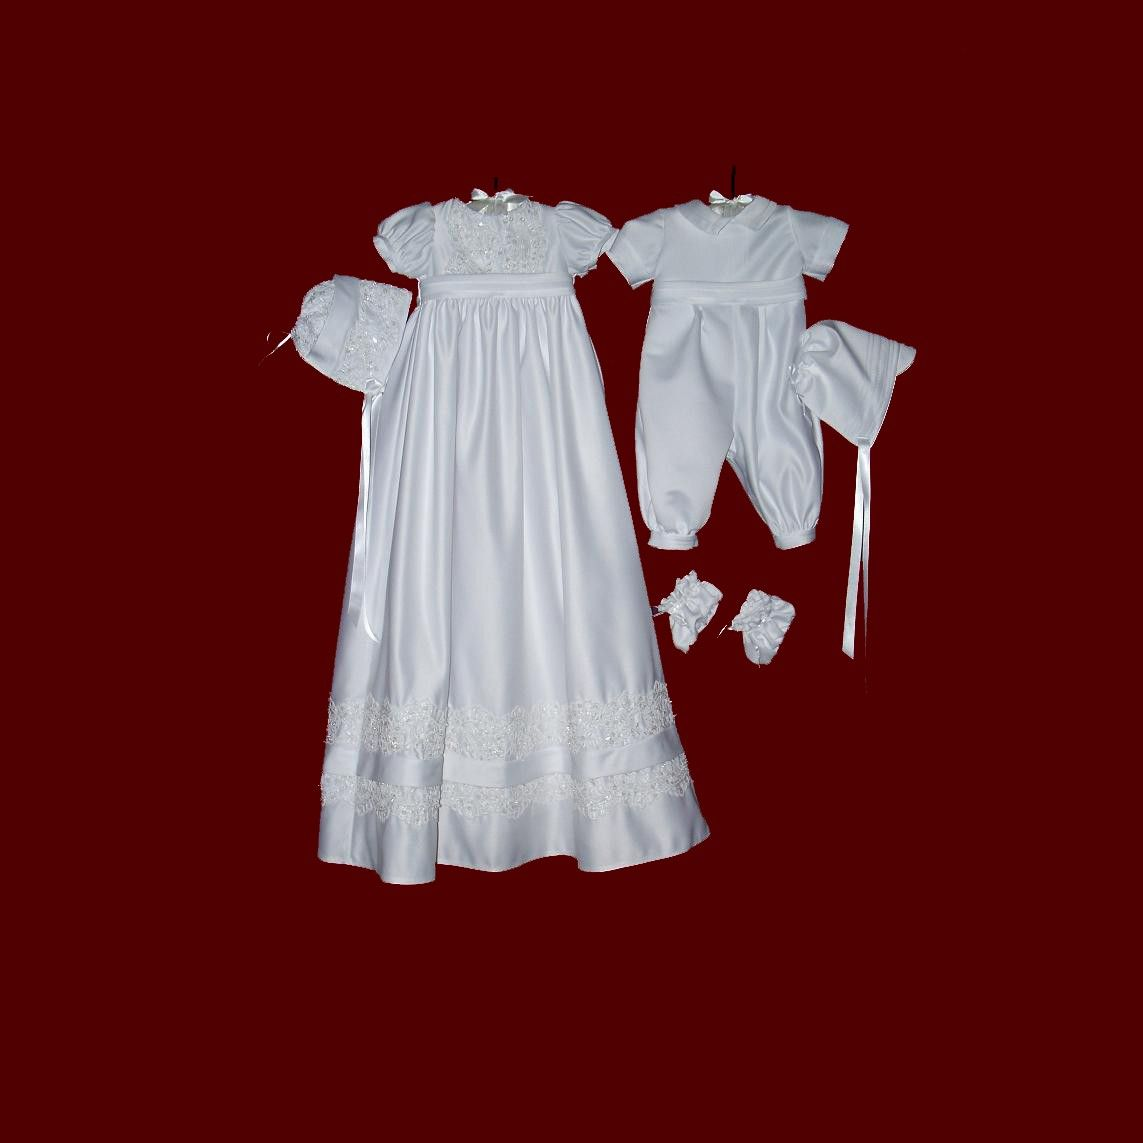 Wedding Dress To Christening Gown: We Love These Christening Outfits Made From A Wedding